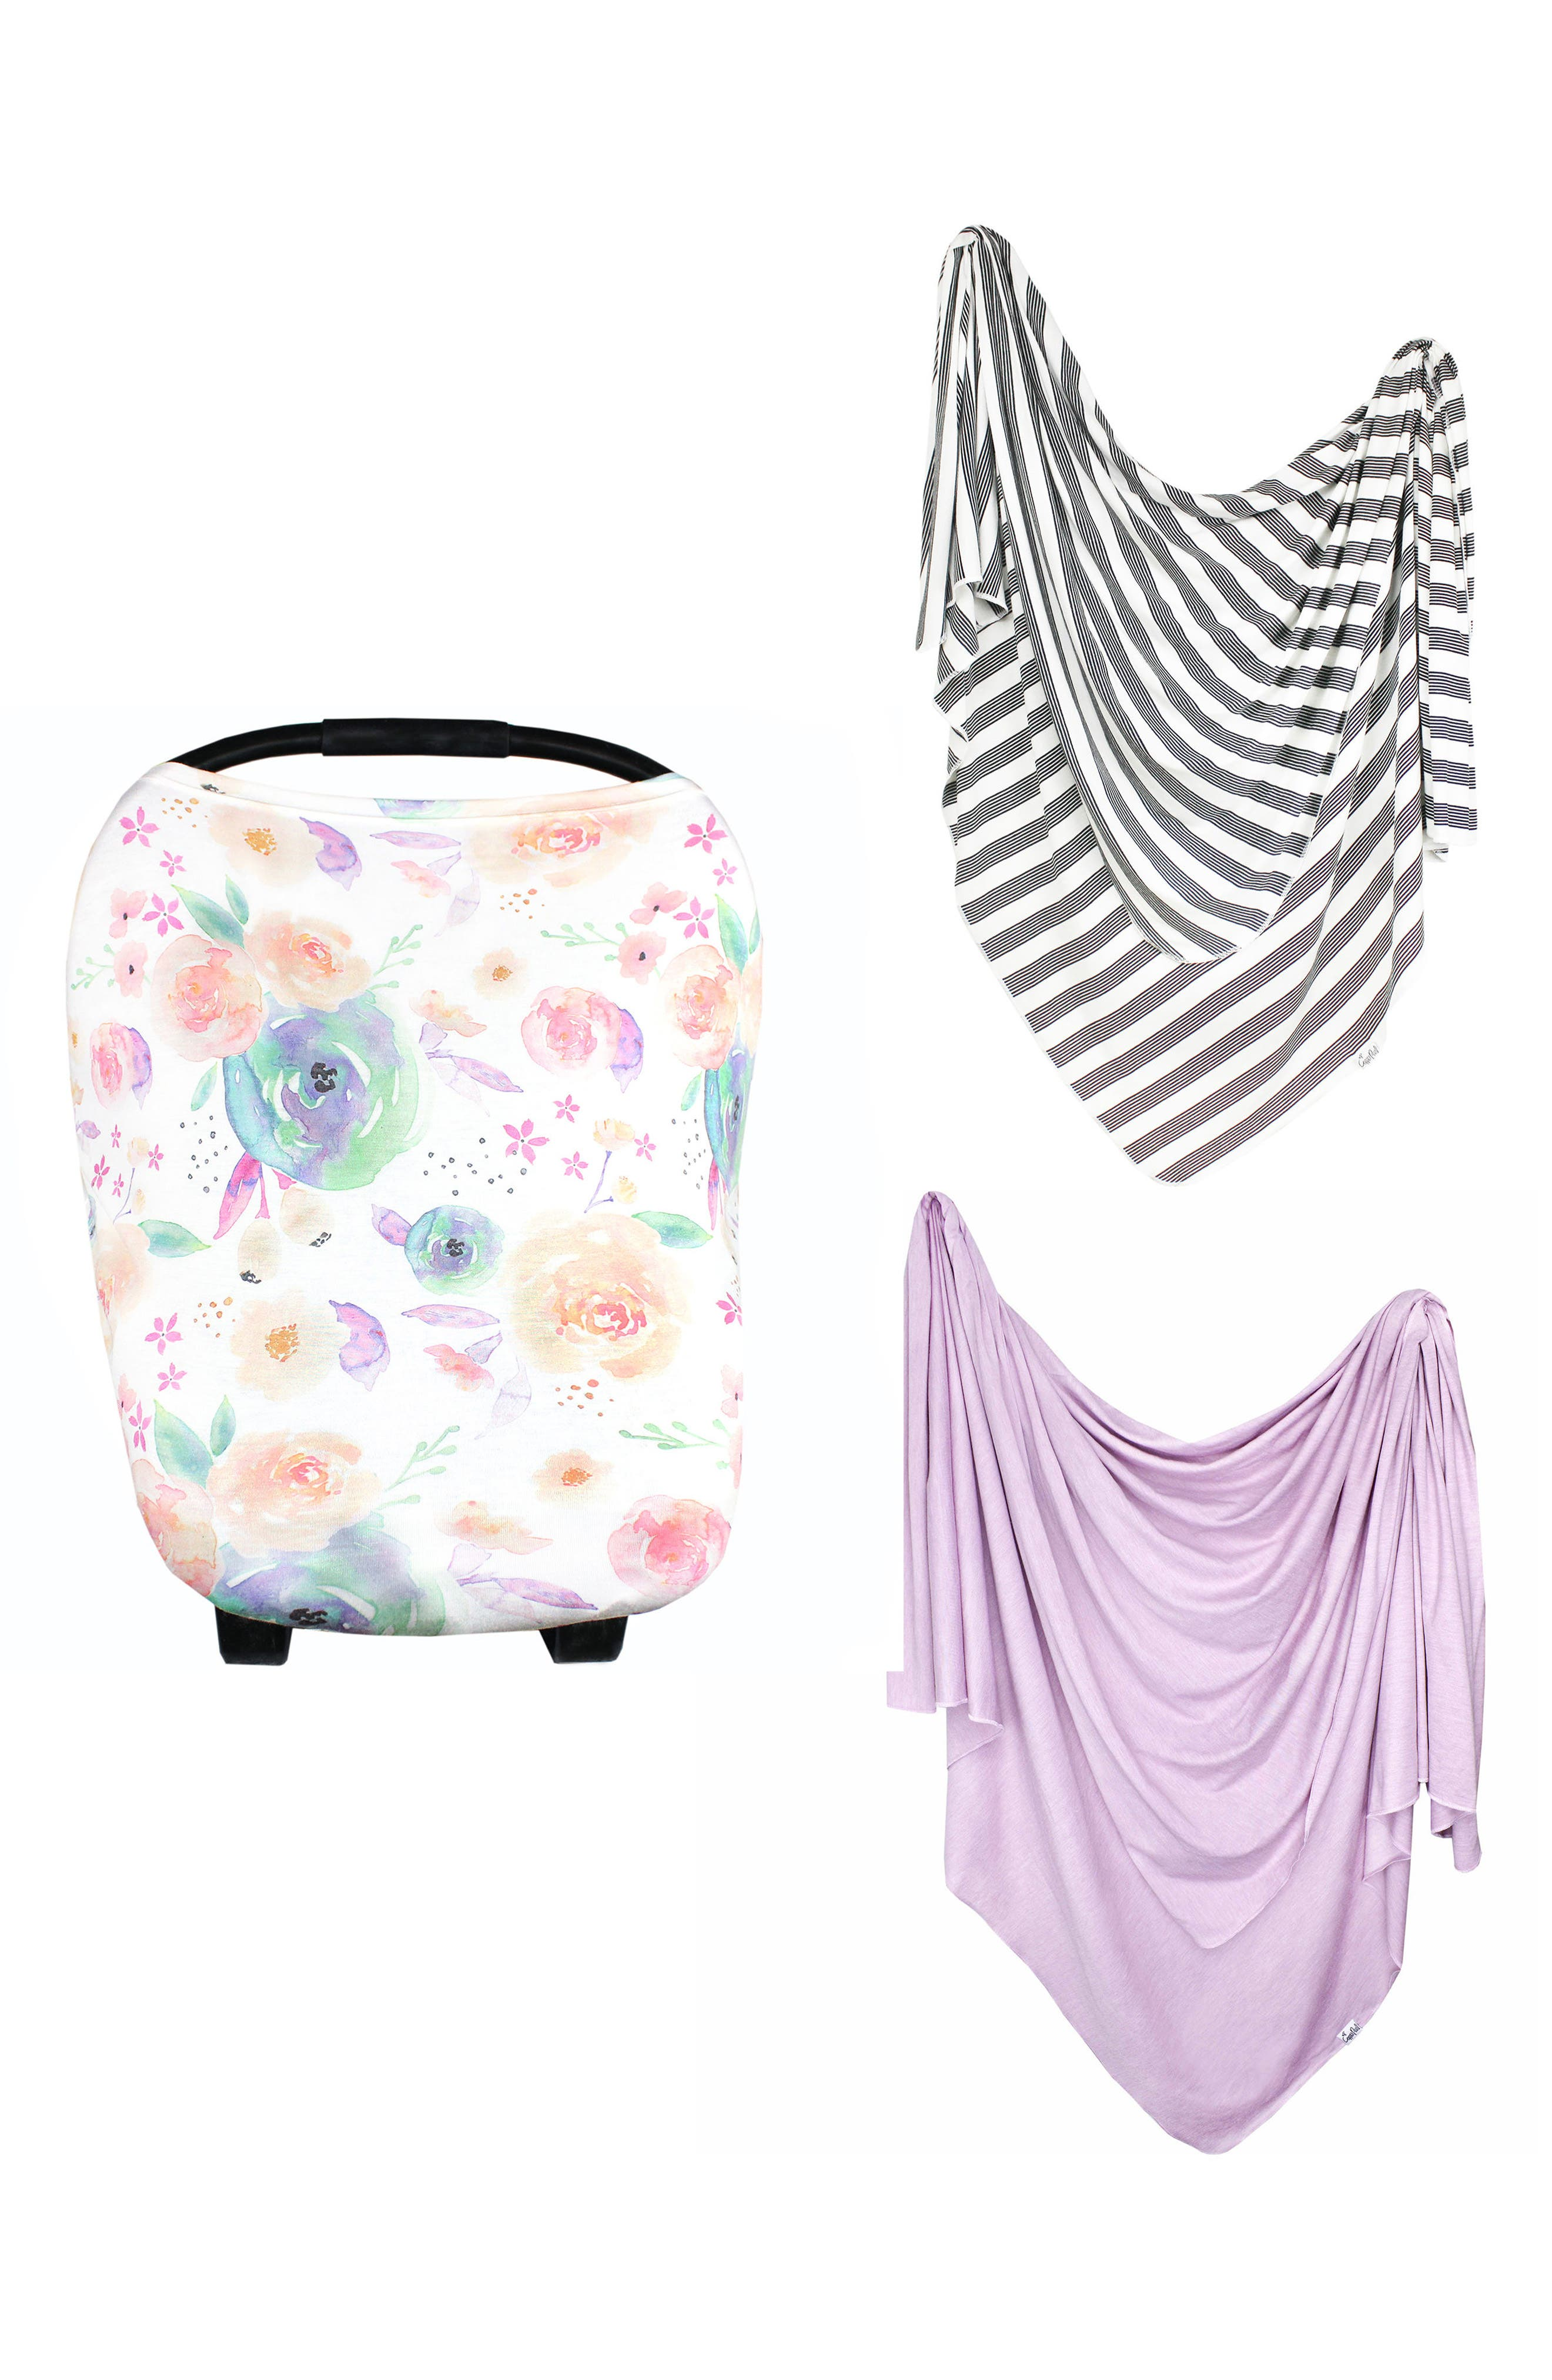 Bloom Multiuse Cover & Swaddle Blanket Gift Set,                             Main thumbnail 1, color,                             Bloom